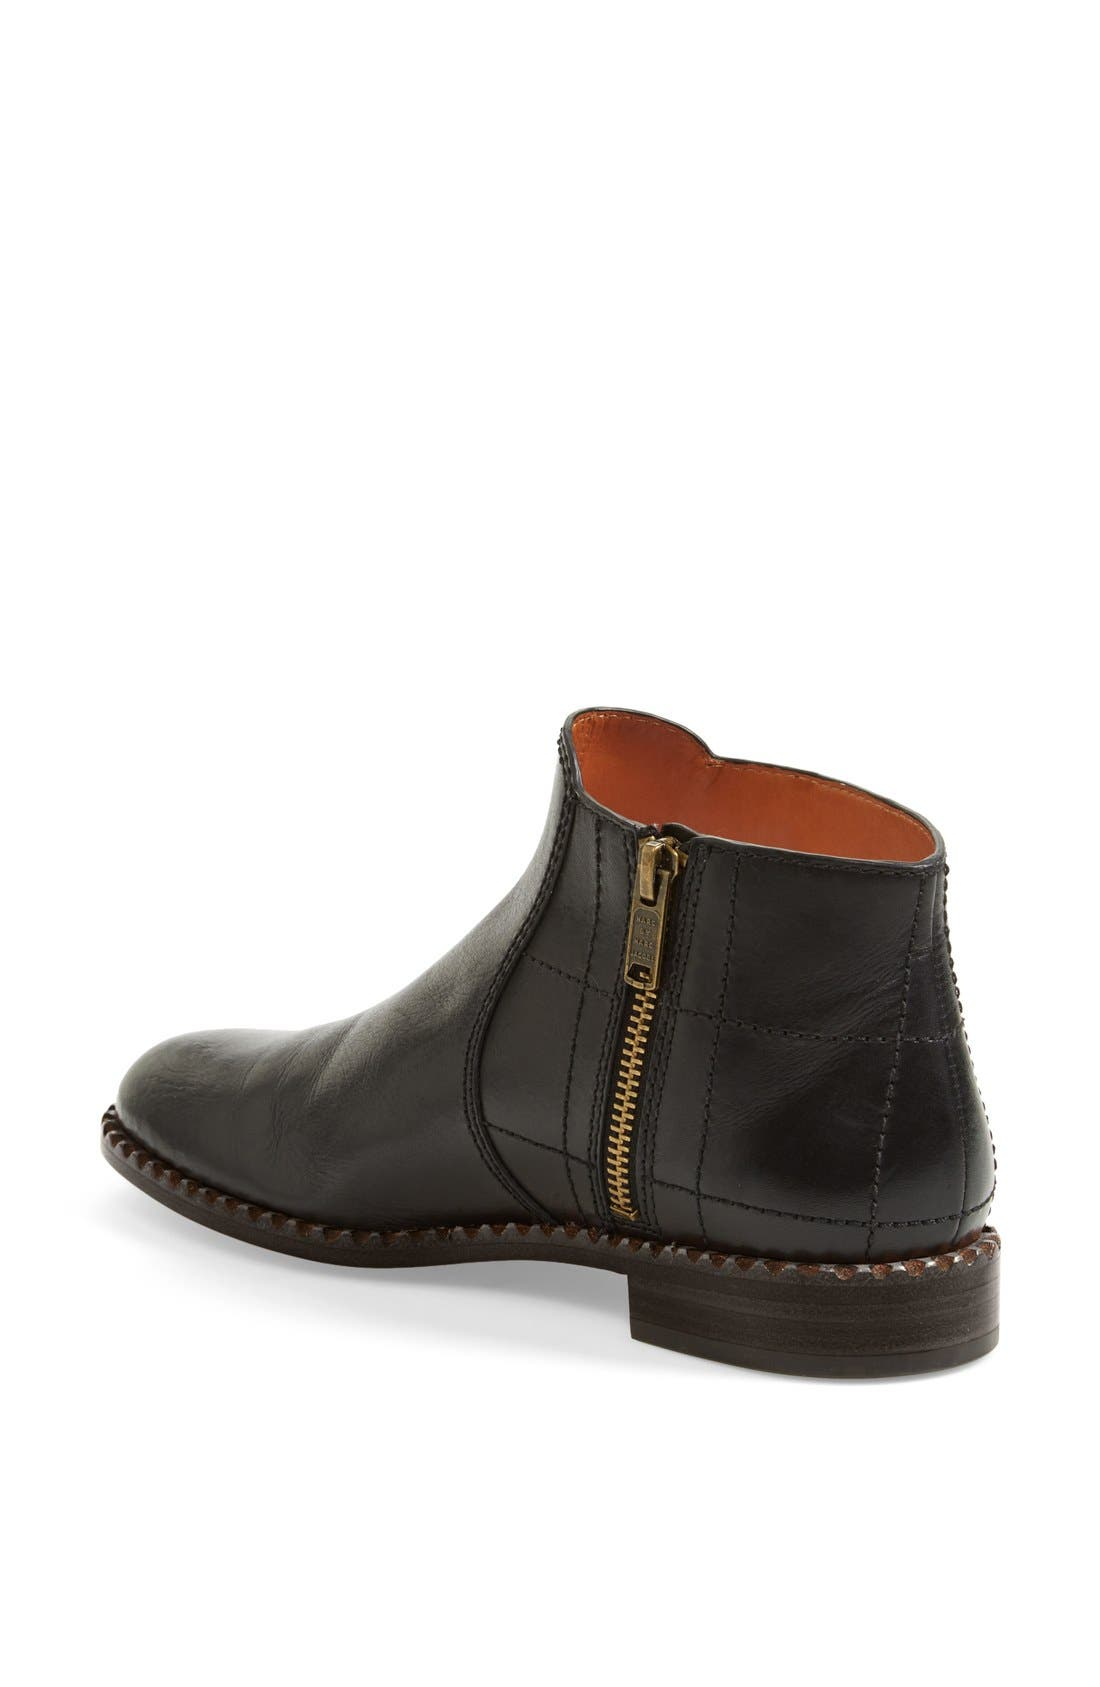 Alternate Image 2  - MARC BY MARC JACOBS Calfskin Ankle Bootie (Women)